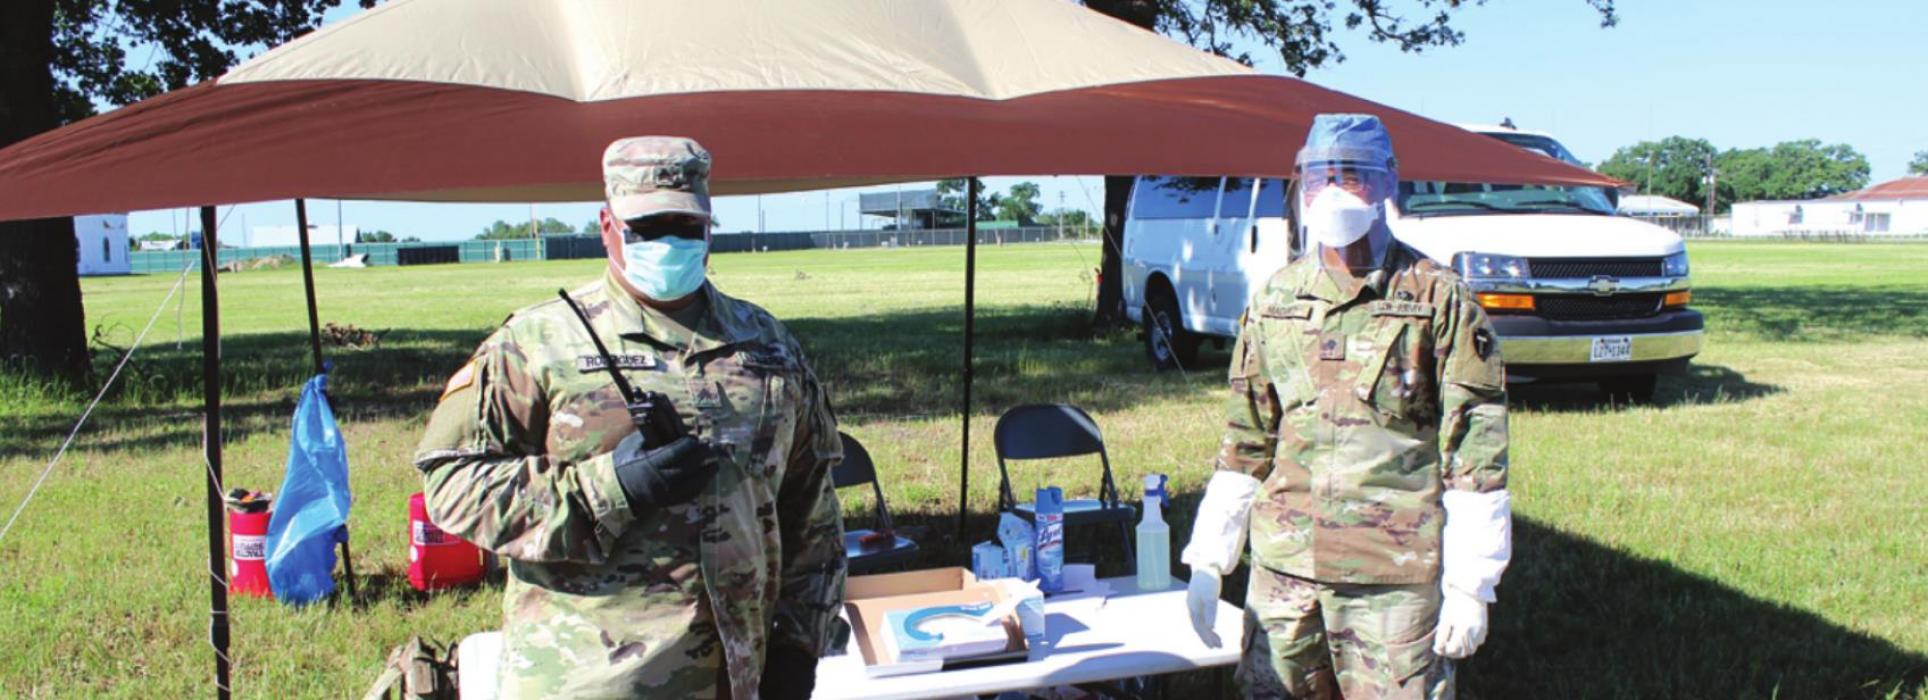 Two members of the National Guard were stationed near the entry to the fairgrounds to assist attendees at Friday's testing event. Photos by Jeff Wick